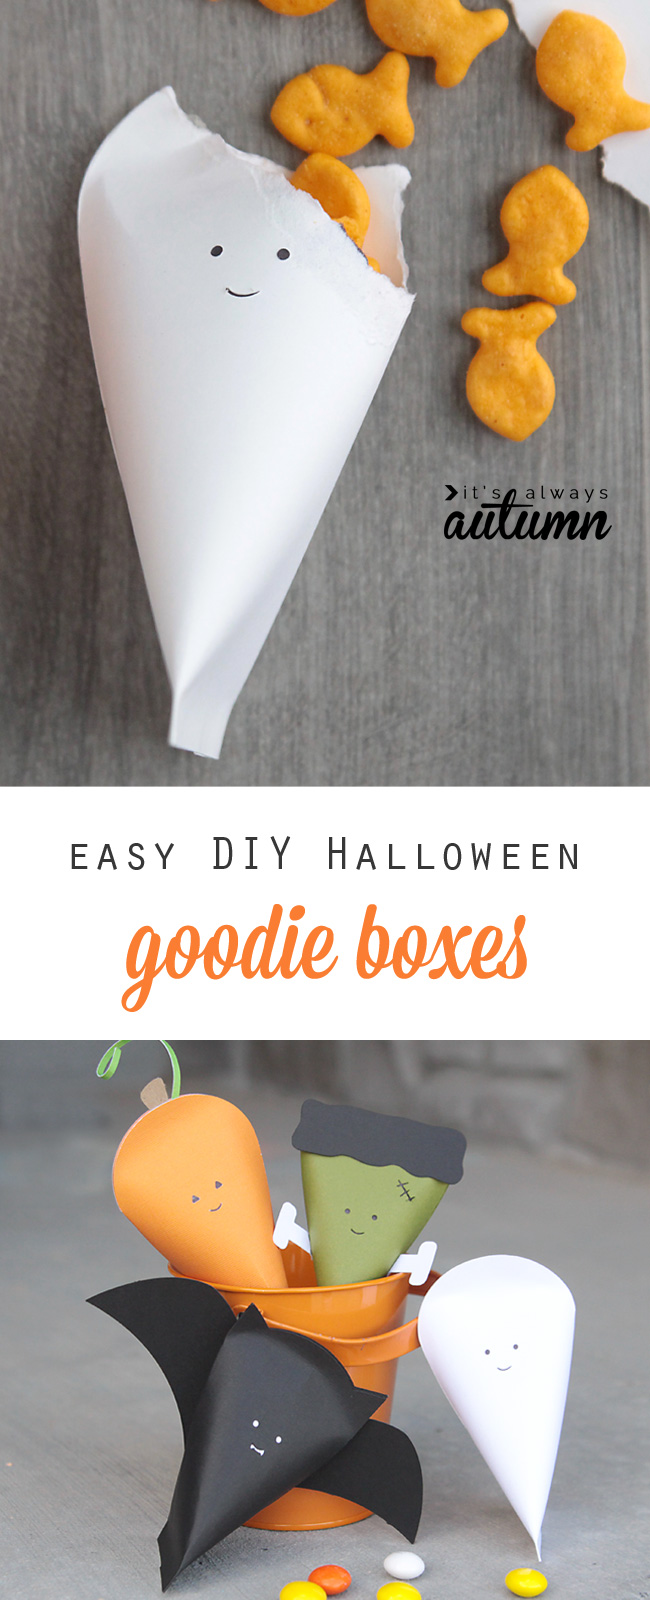 Paper Halloween goodie boxes